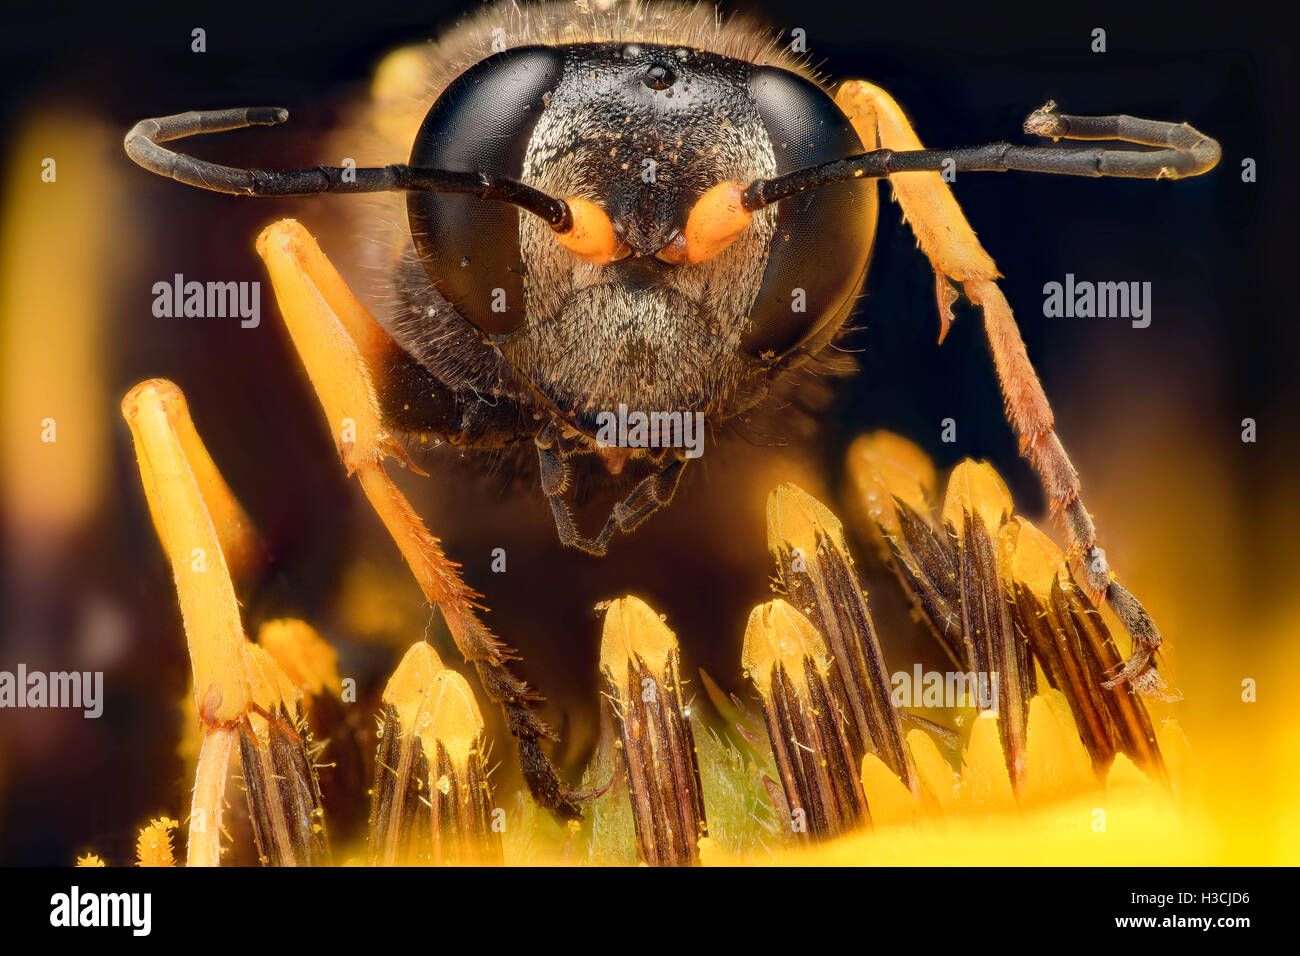 Extreme magnification - Wasp on a flower - Stock Image